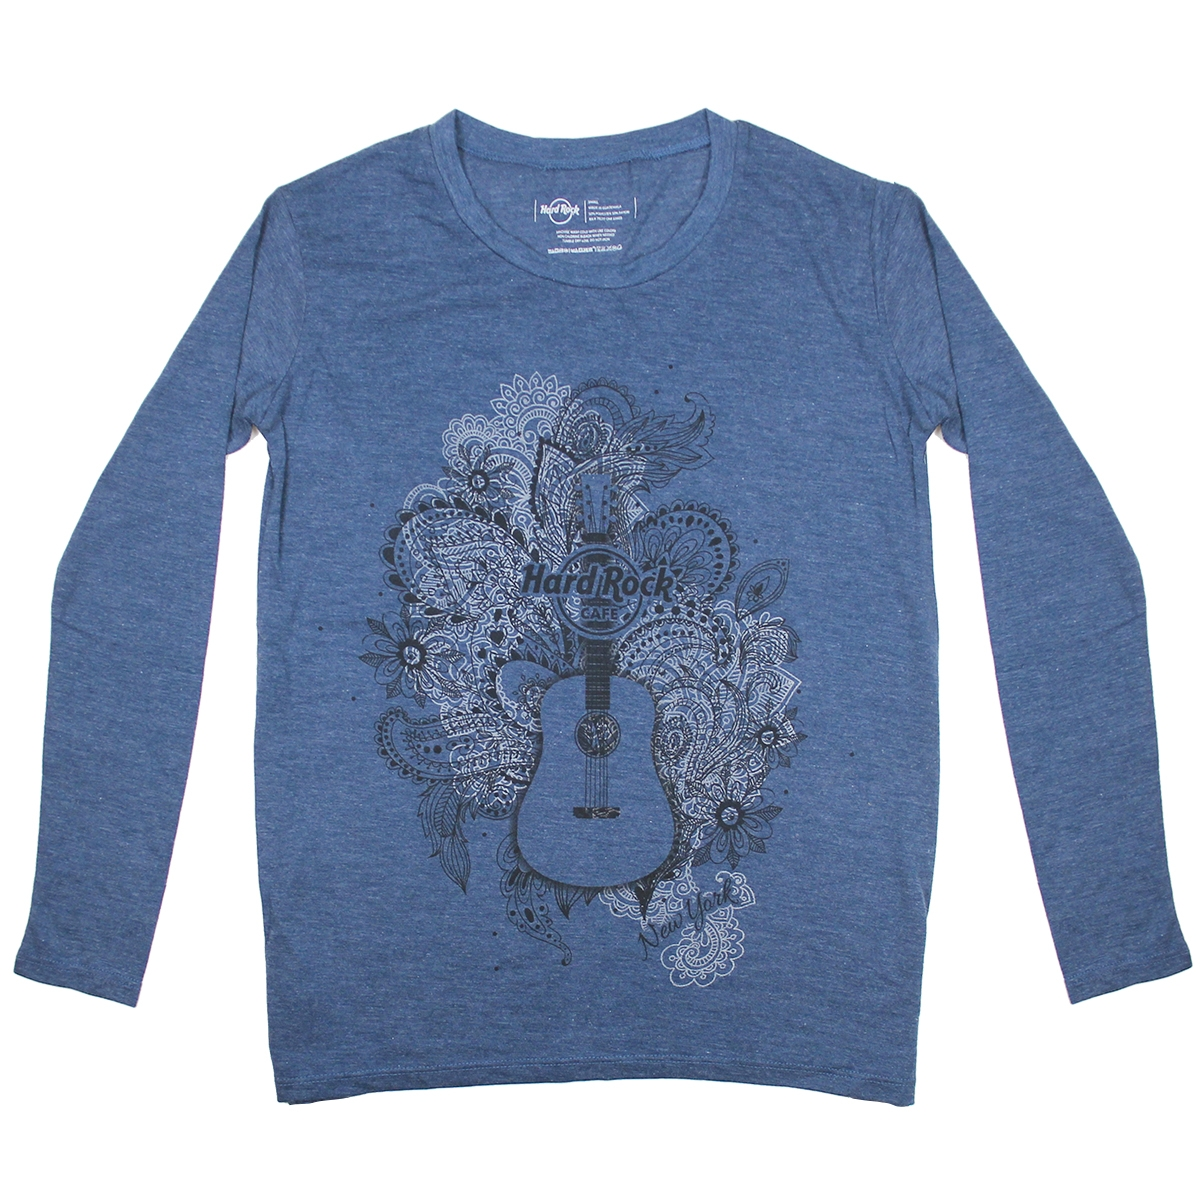 c9b973cd Ladies Navy Paisley Guitar Tee, New York